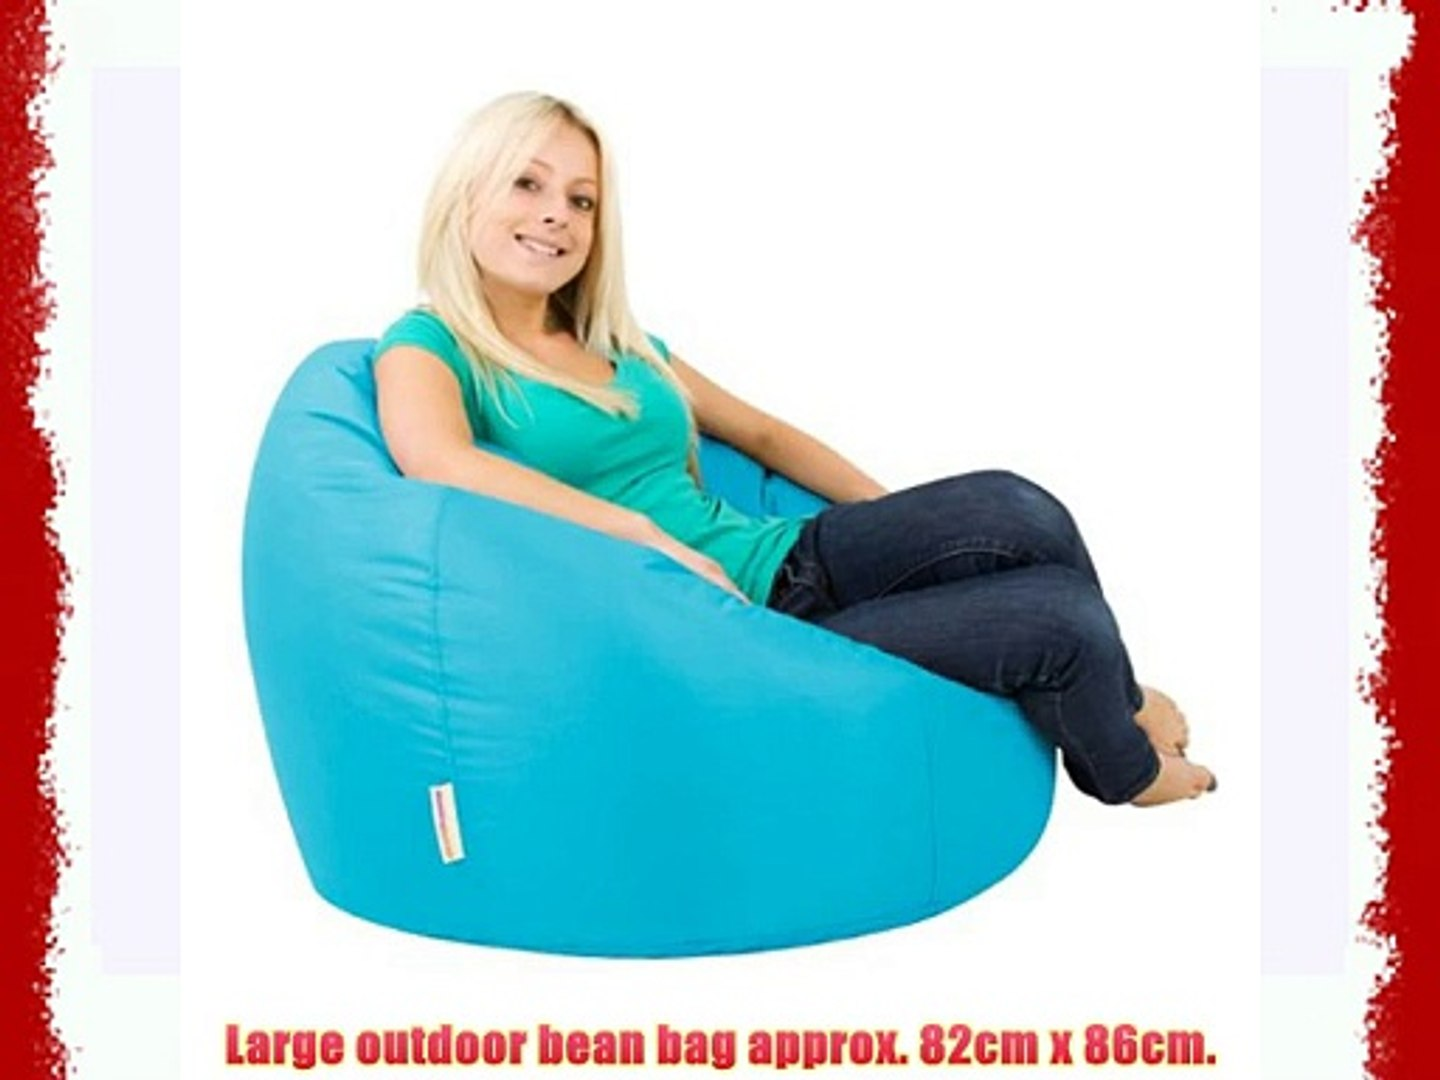 Remarkable Bean Bag Bazaar Panelled Xl Bean Bag Chair Indoor Outdoor Aqua Extra Large Bean Bags Ocoug Best Dining Table And Chair Ideas Images Ocougorg